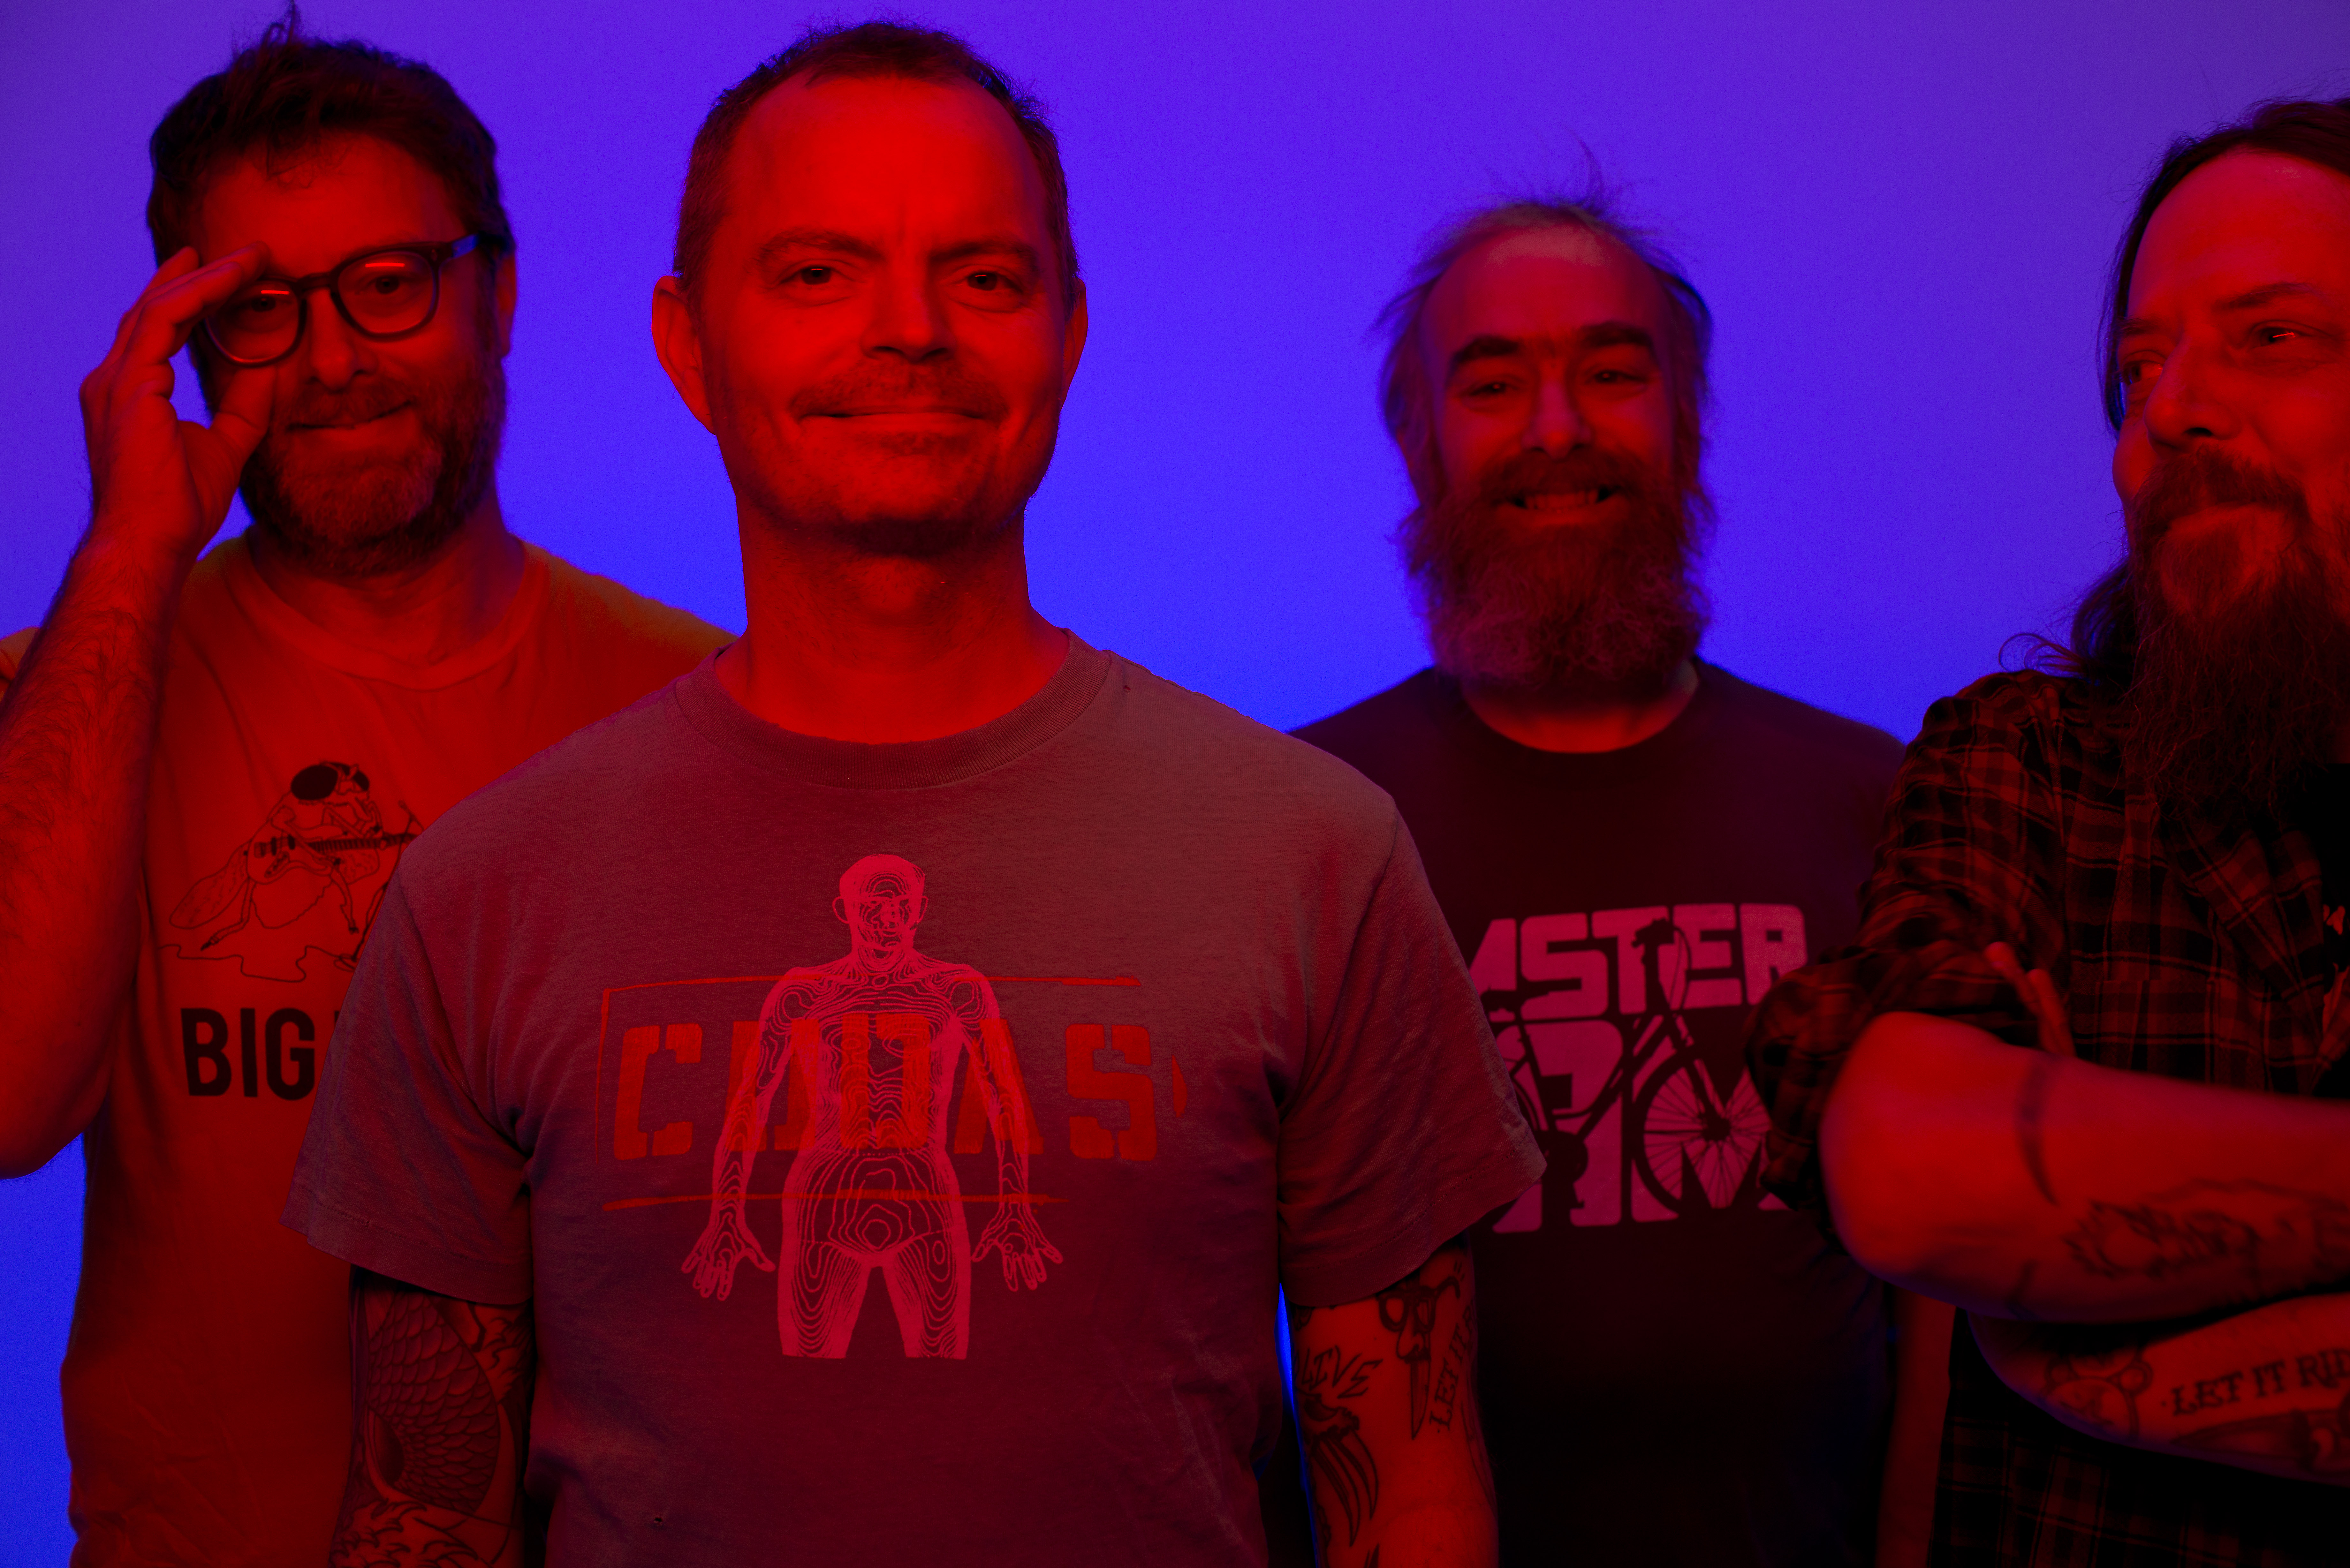 Four people stand together with slight smiles on their faces. The lighting is distorted so they appear to be very reddish in color, and the background is a bright purplish blue.